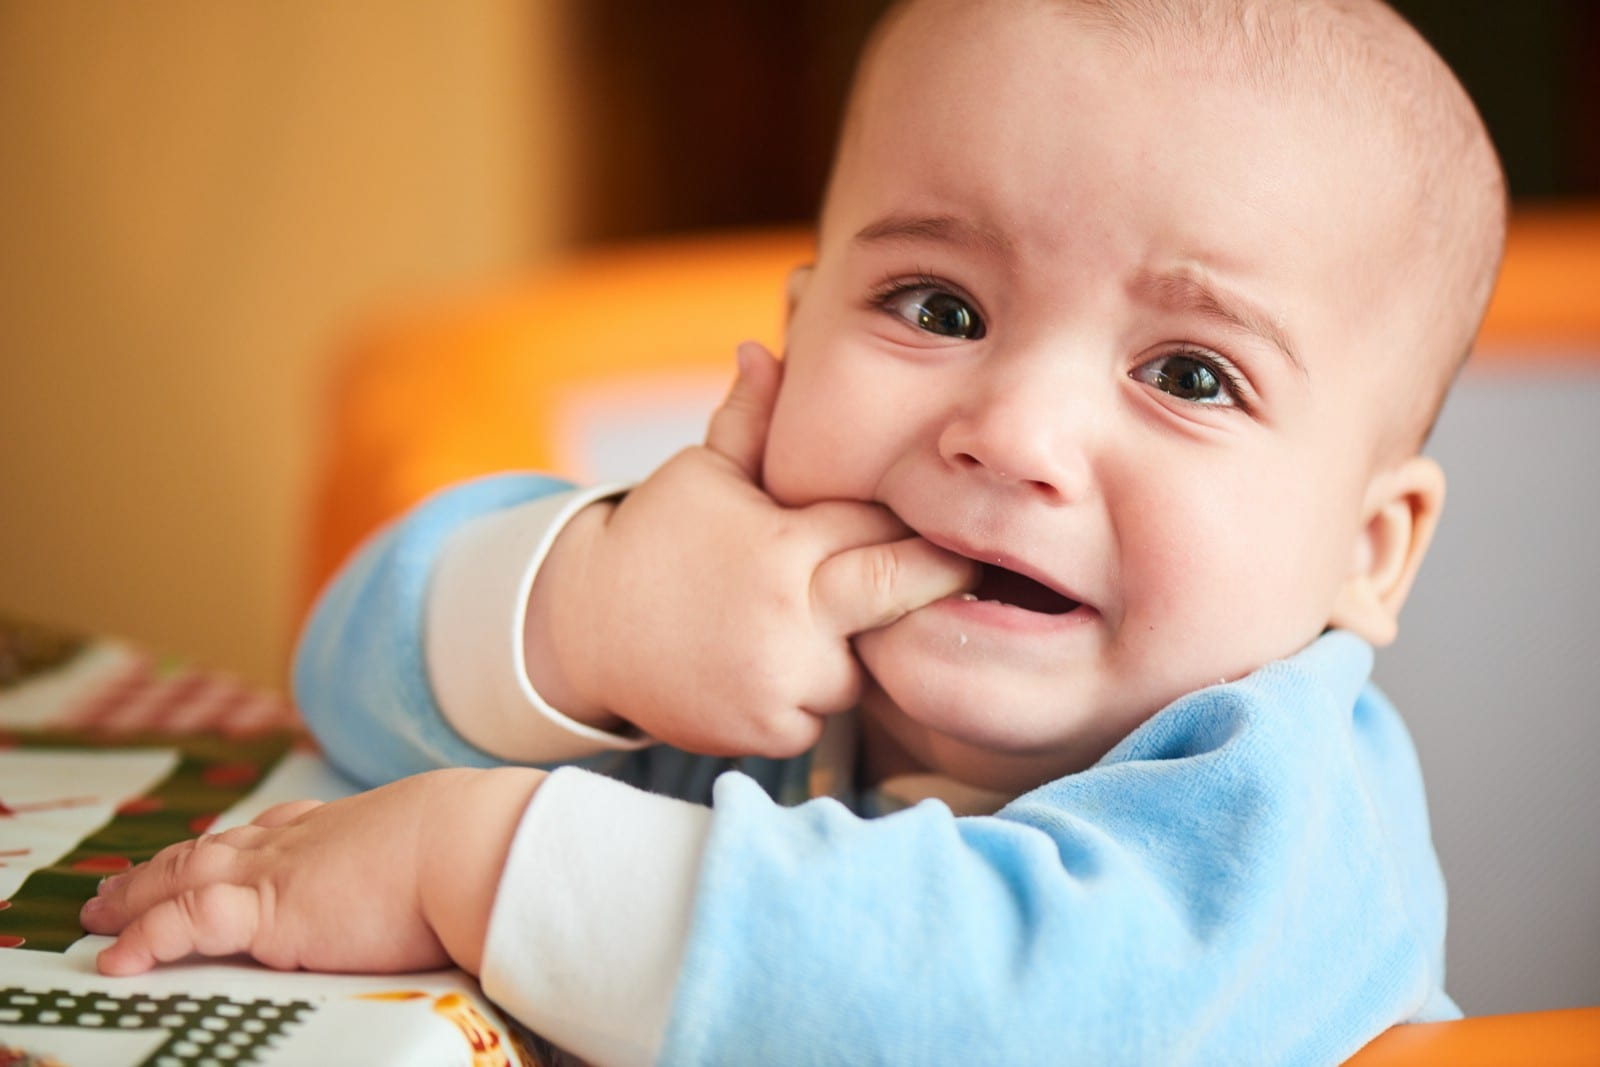 Does Teething Impact My Baby's Sleep